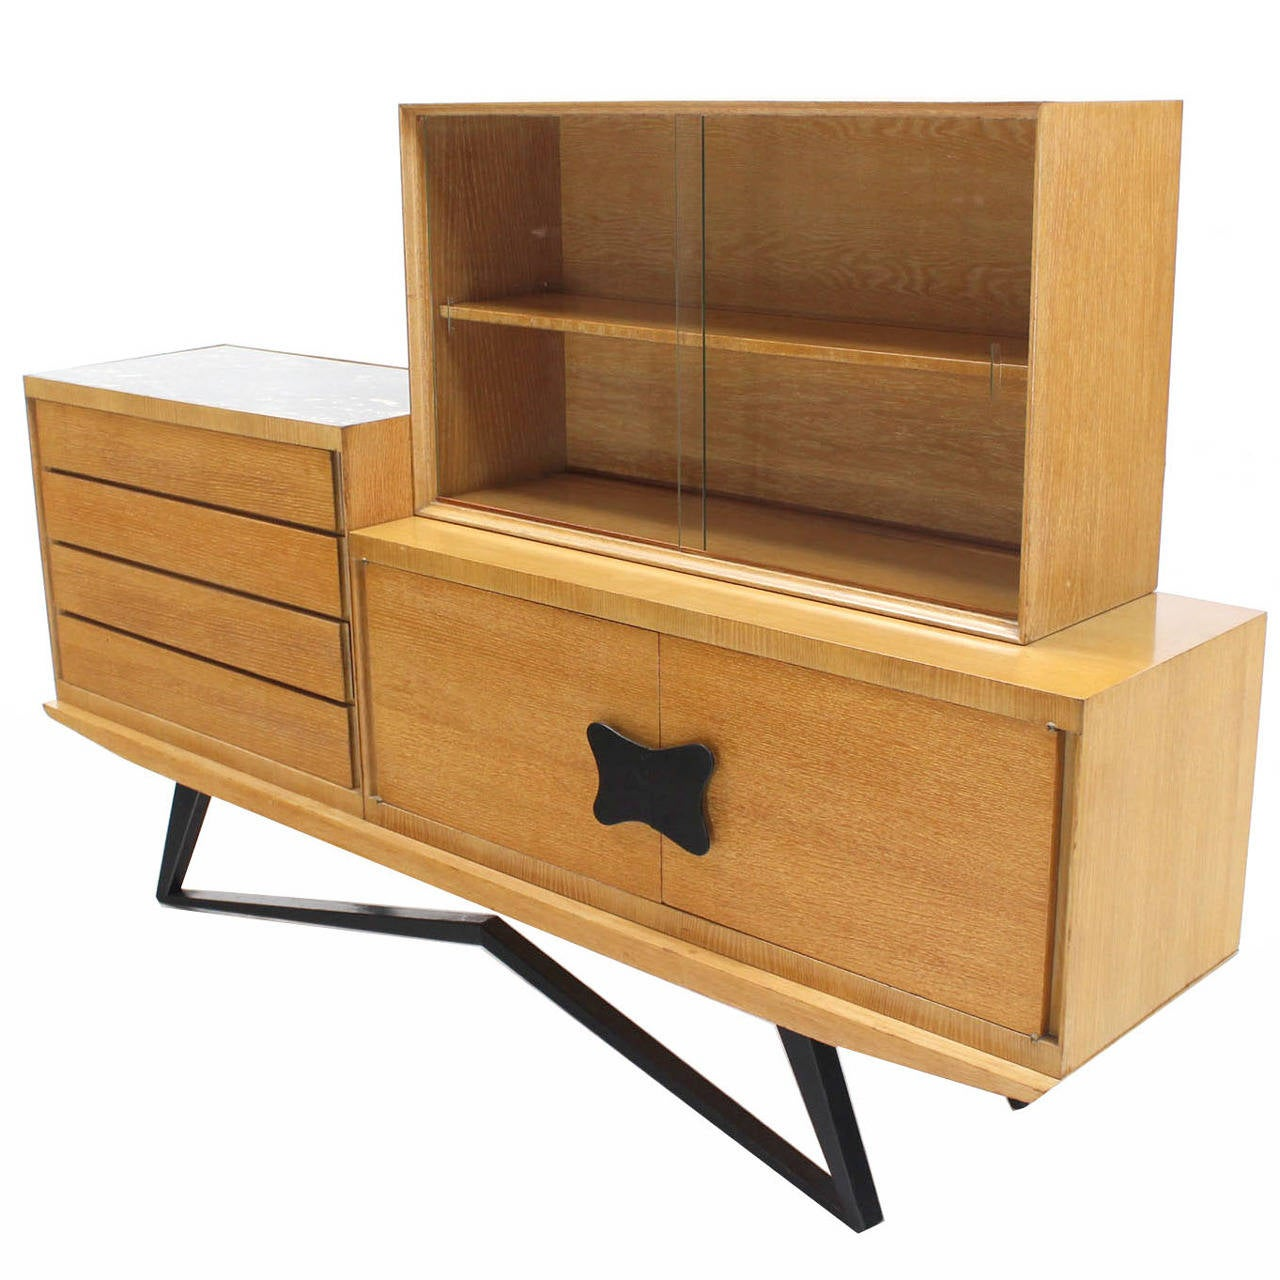 ... -Piece Dresser and Bookcase, Mid-Century Modern For Sale at 1stdibs